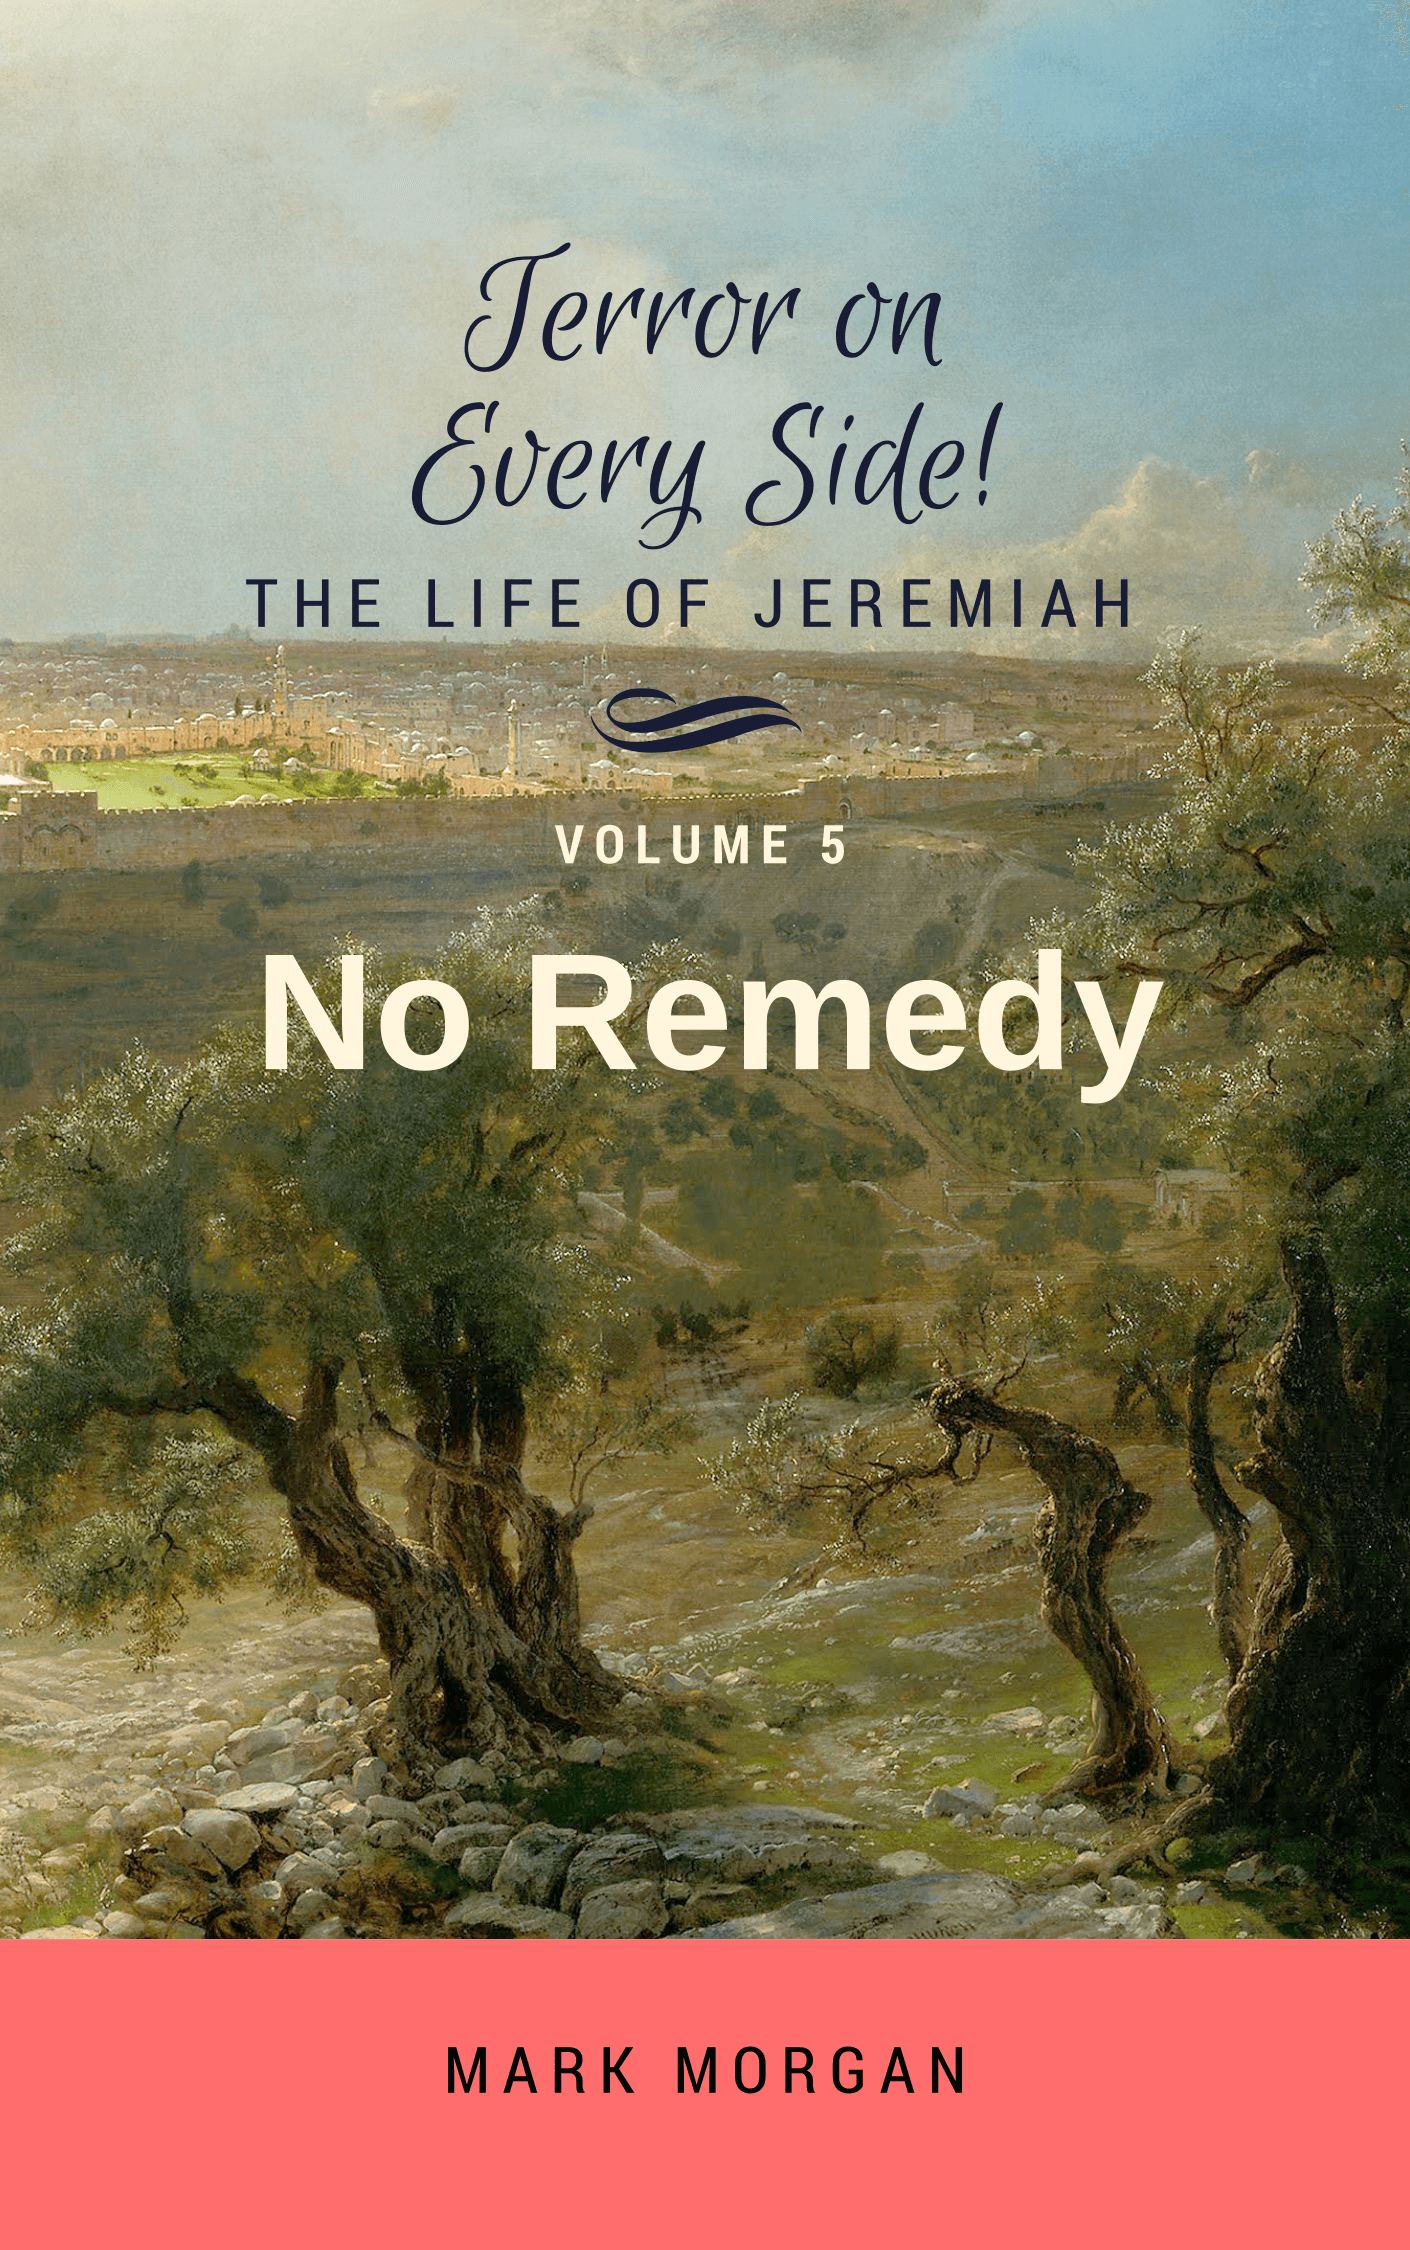 Terror on Every Side! Volume 5 – No Remedy (Hard Cover)